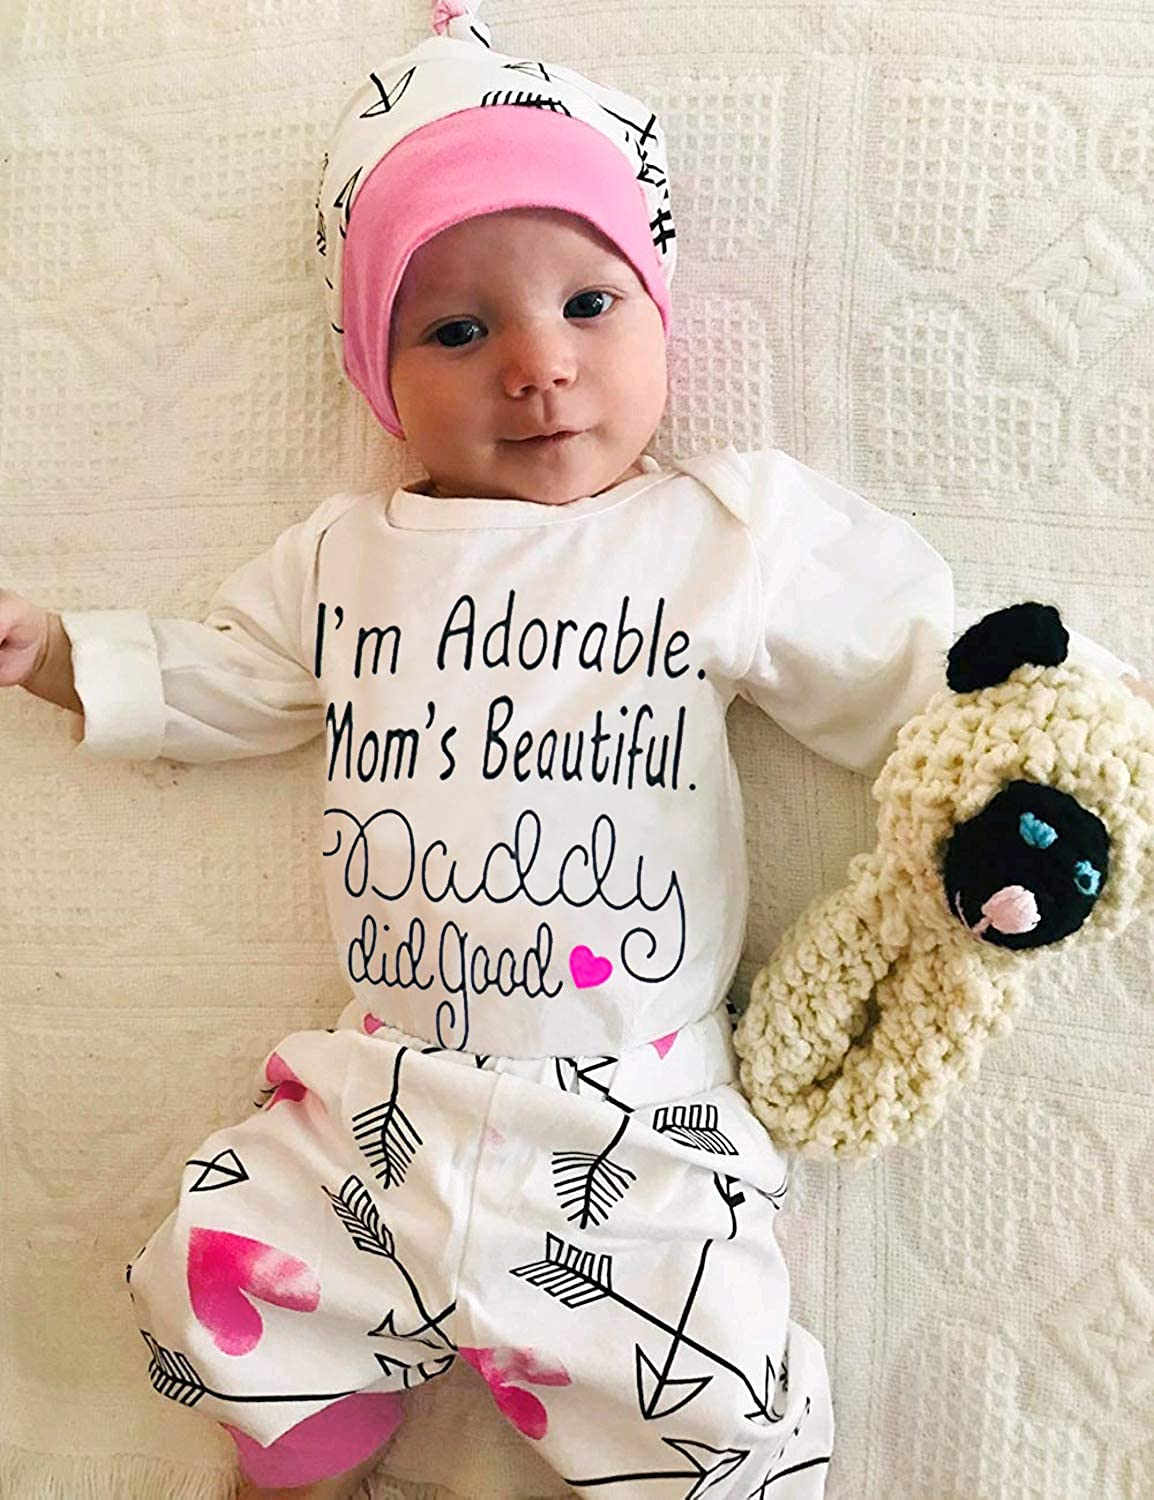 Headband Arrow Heart Pants Baby Girl Clothes Valentines Day Cute Letter Romper Hat Newborn Girls Outfits 4pcs